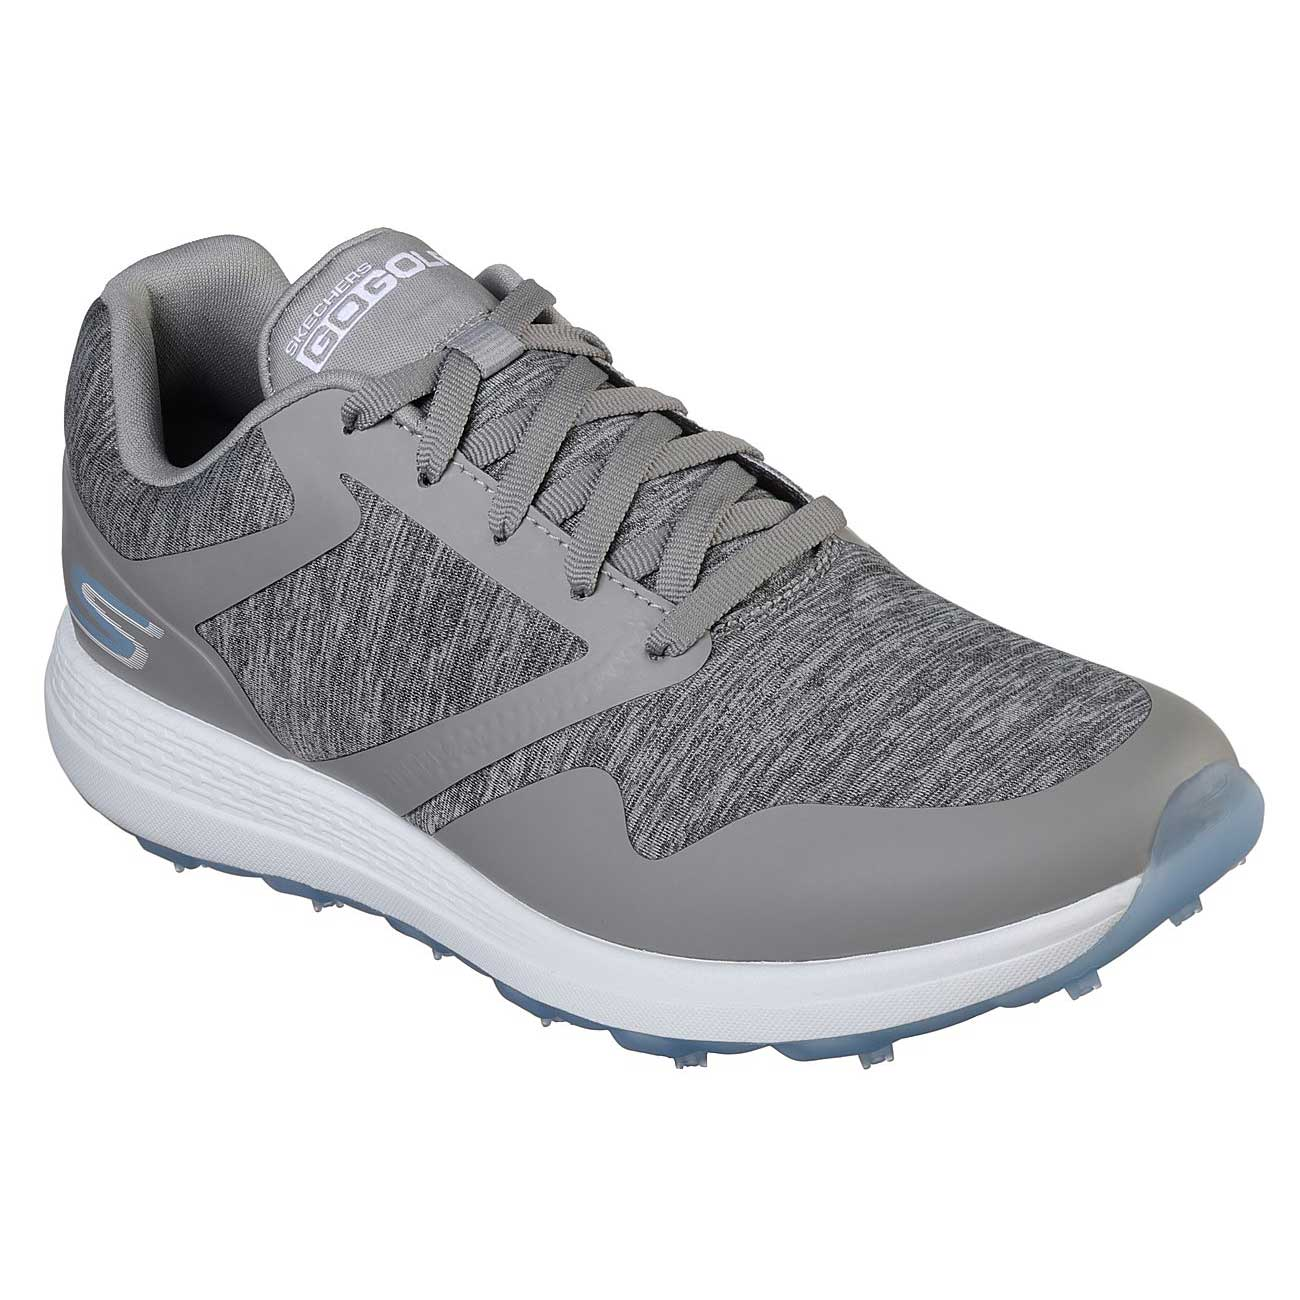 Skechers Women's Go Golf Max Cut Grey/Blue Golf Shoe